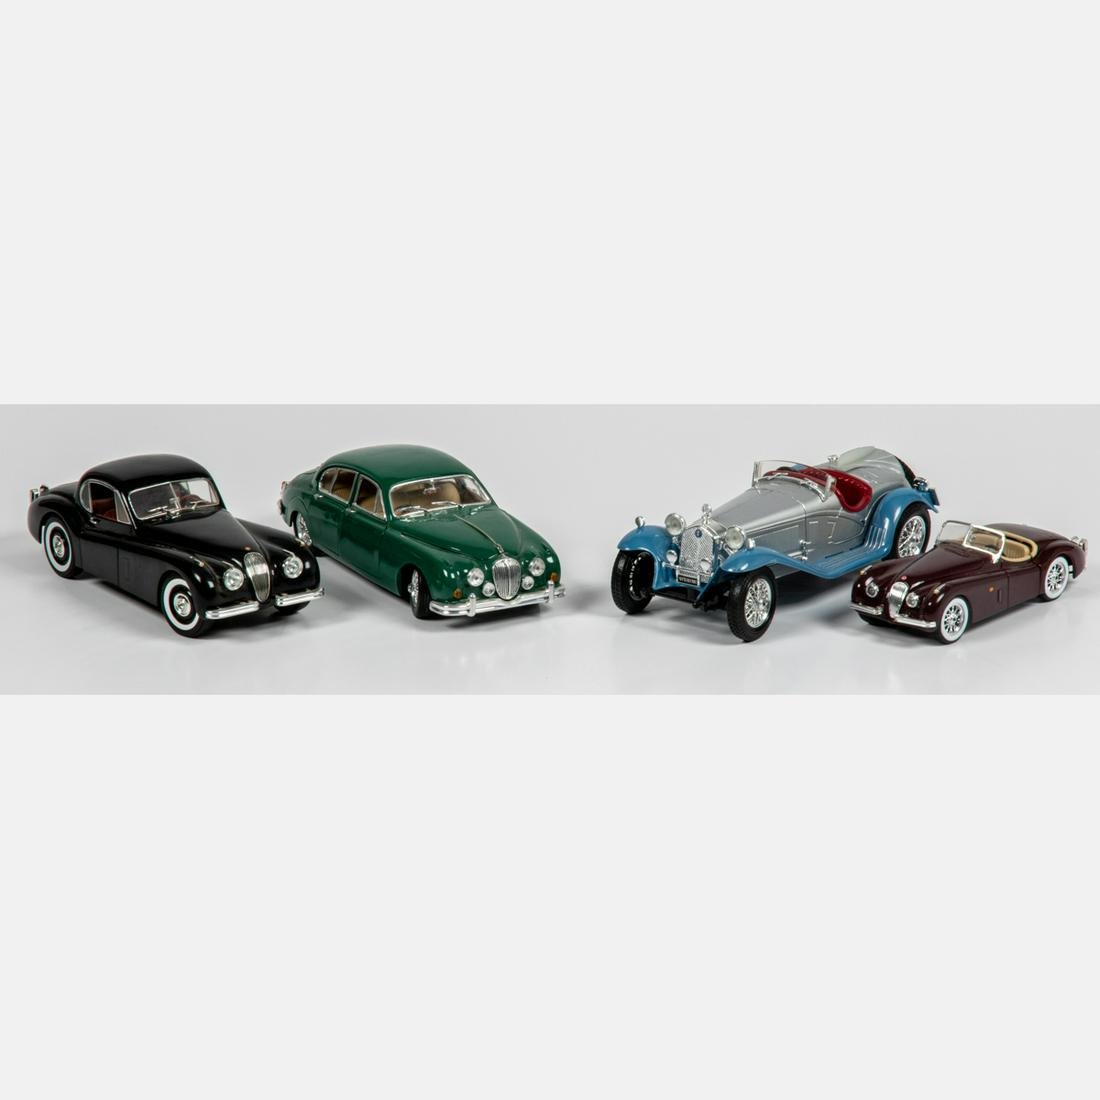 Four 1:18 and 1:24 Scale Model Cars